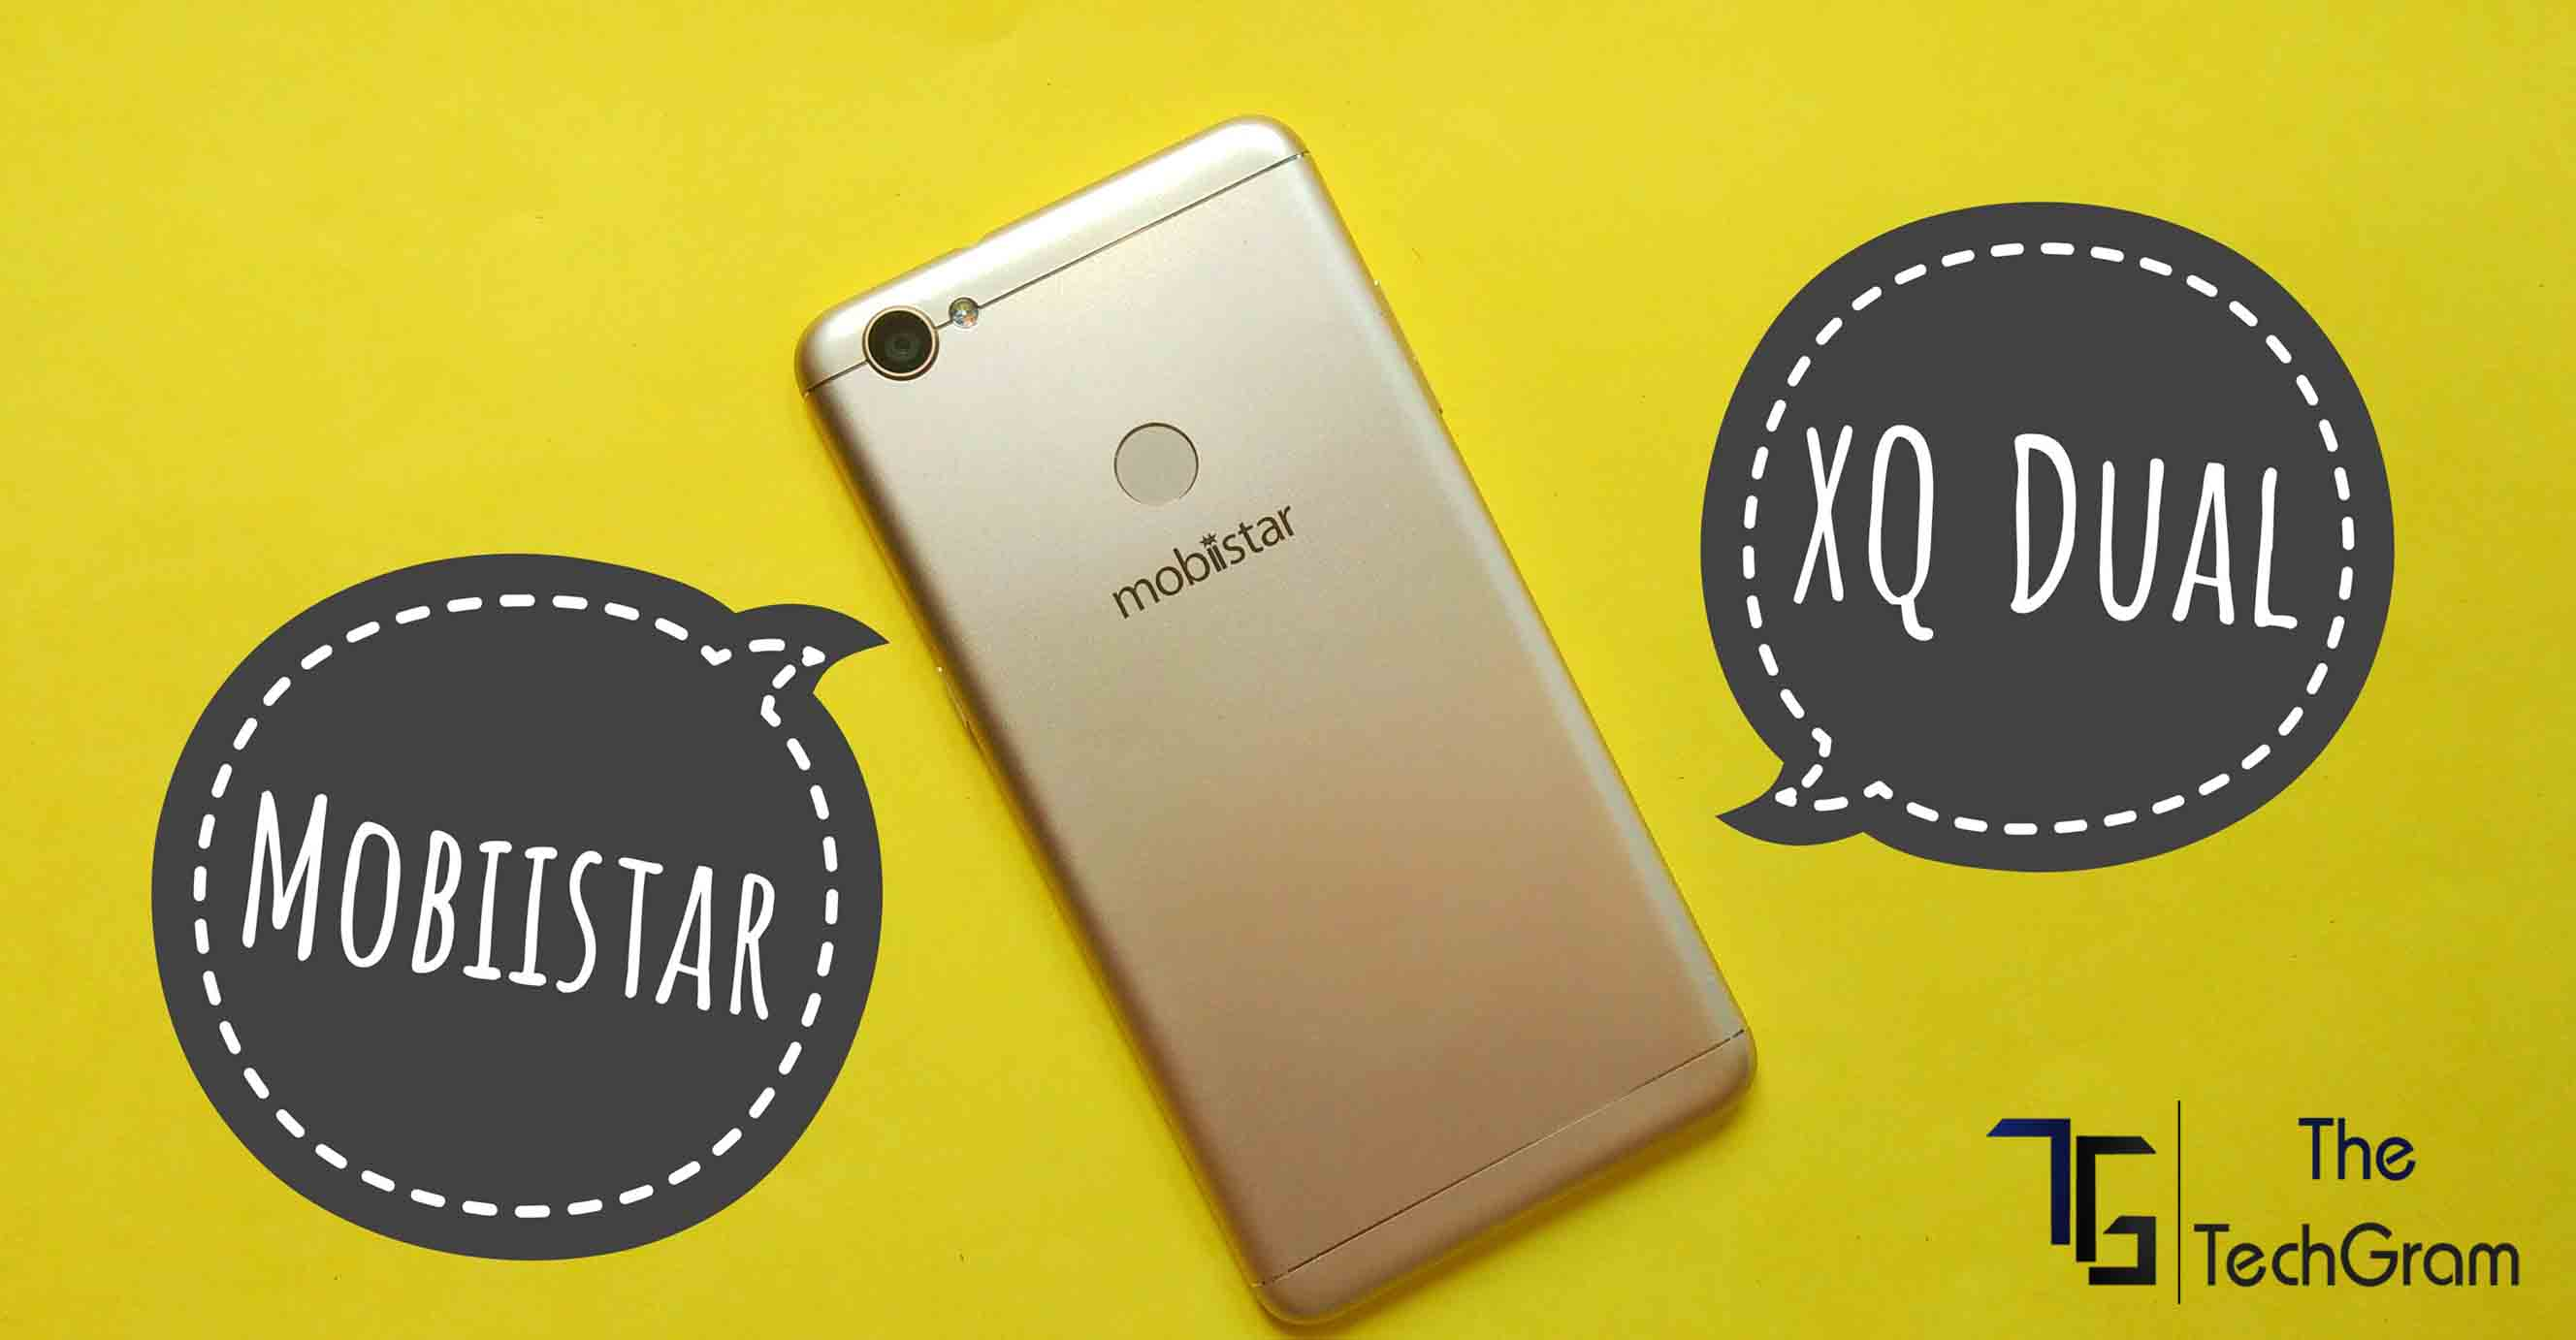 Mobiistar is going to launch, its first-ever smartphone in India. The Device is going to be Mobiistar XQ Dual; From the name, you can understand that Something Dual is coming with this smartphone